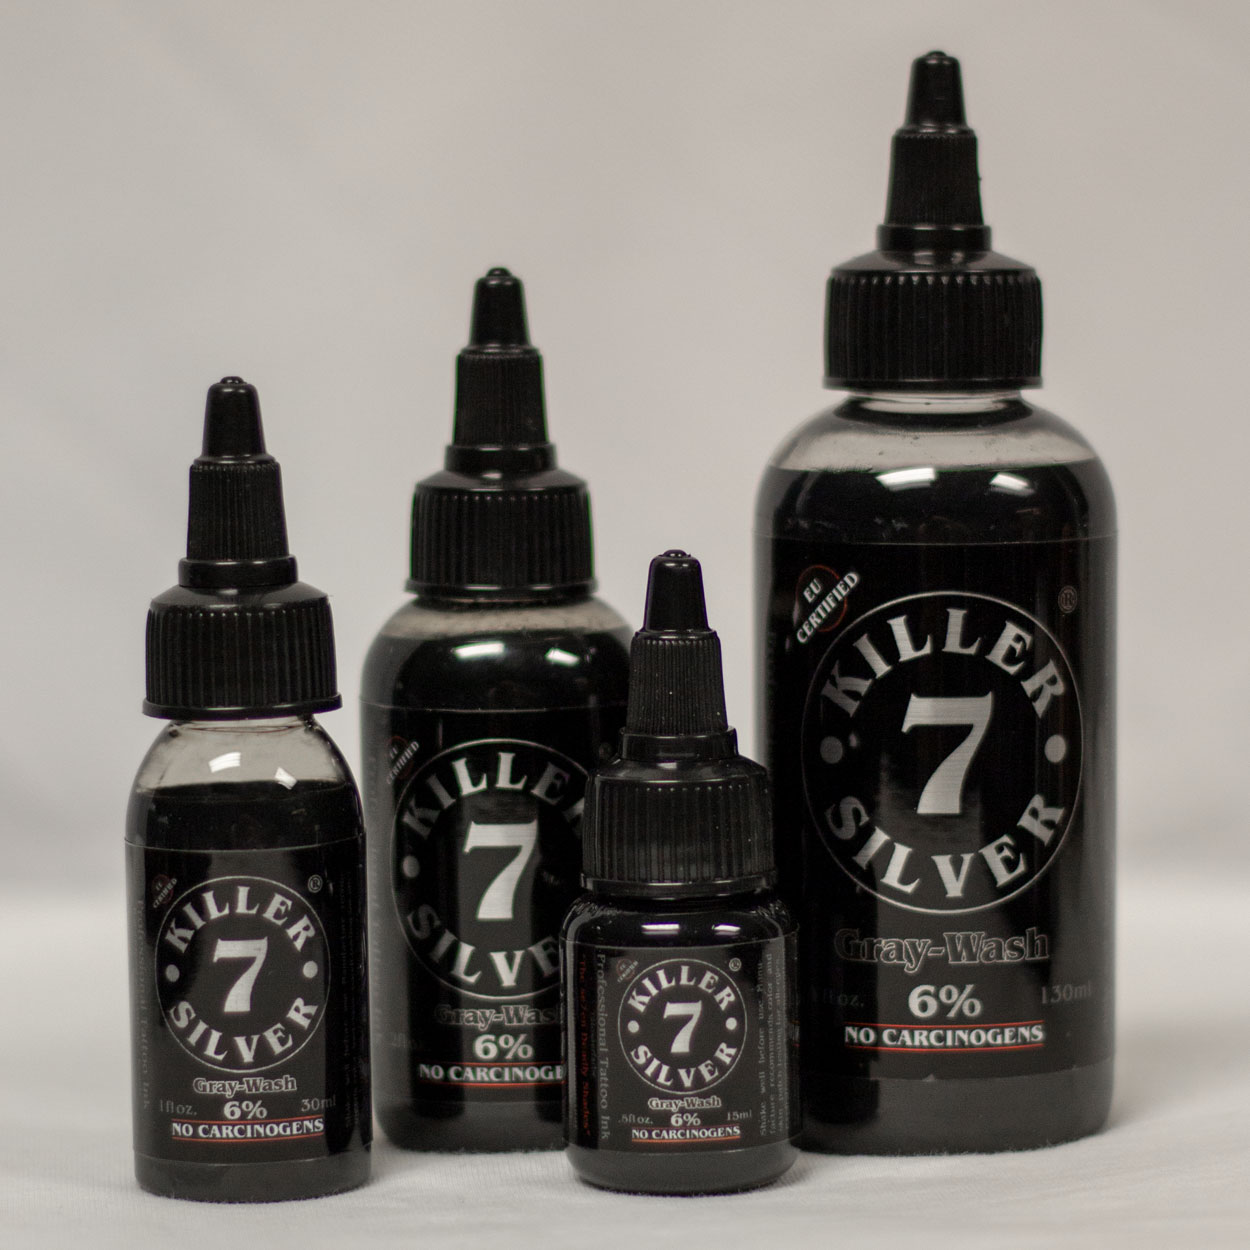 Killer Silver-Gray Wash 6%-Tattoo Ink-4 sizes-Silver Softness